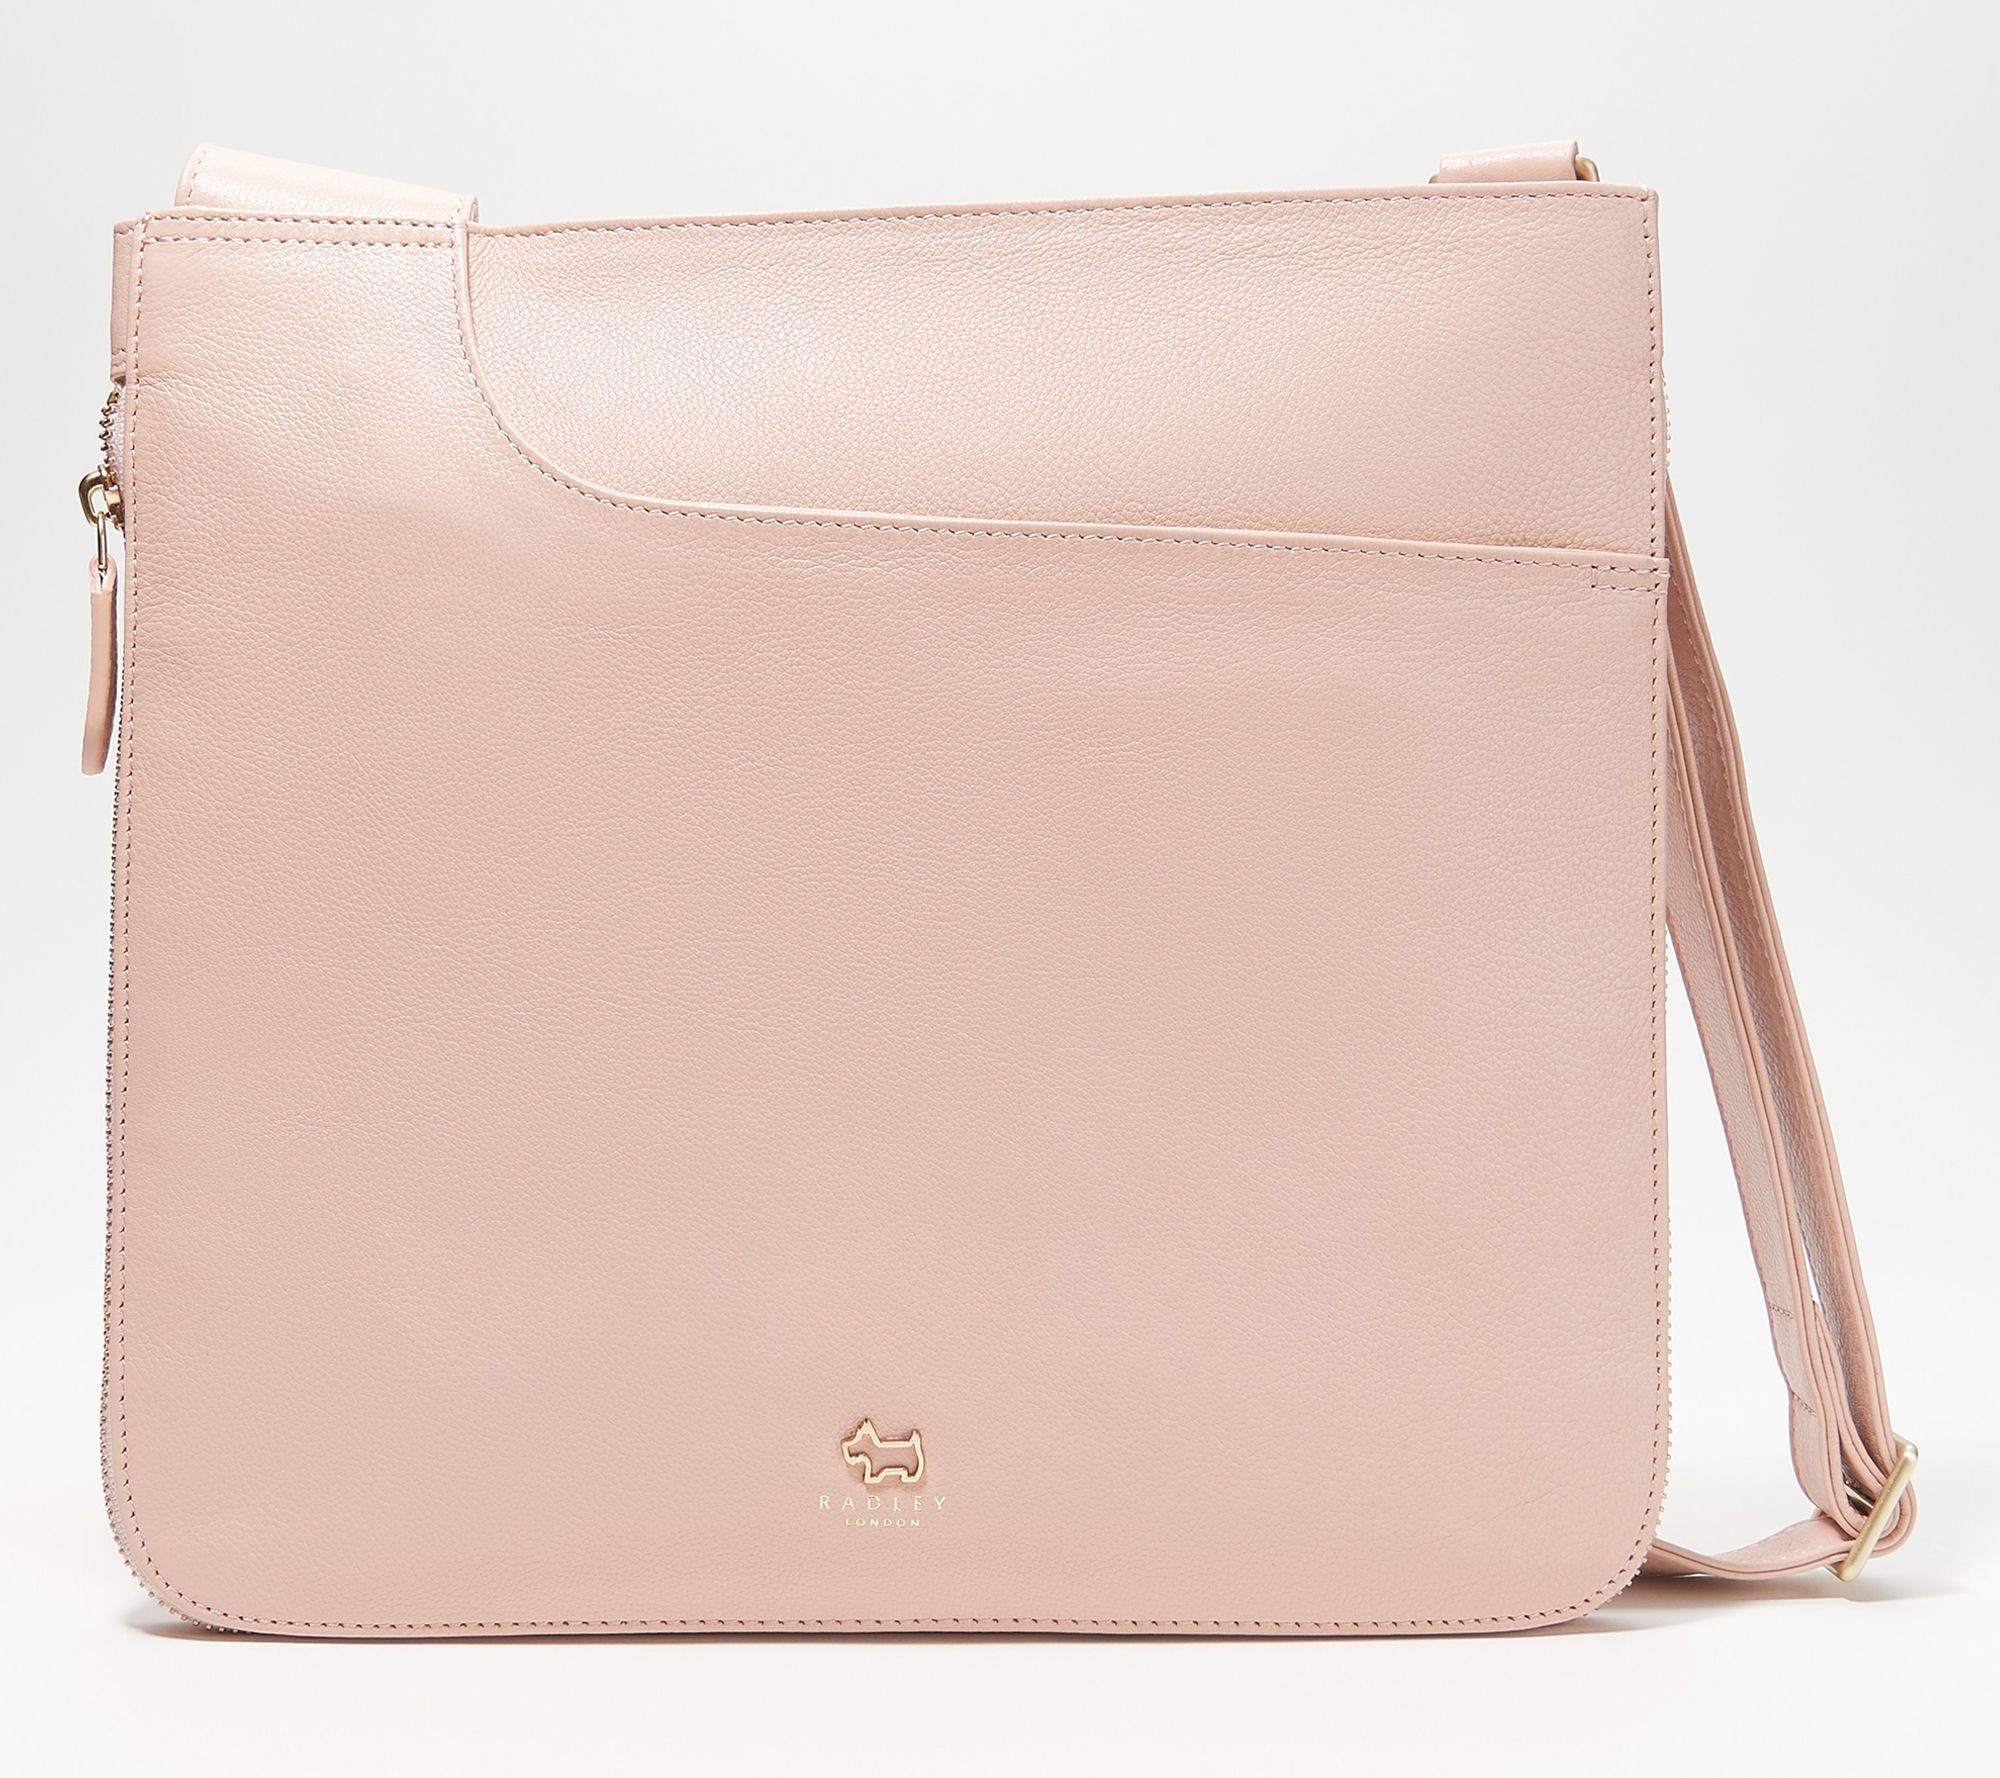 fcb1004c1 RADLEY London Pocket Leather Large Zip-Top Crossbody - Page 1 — QVC.com